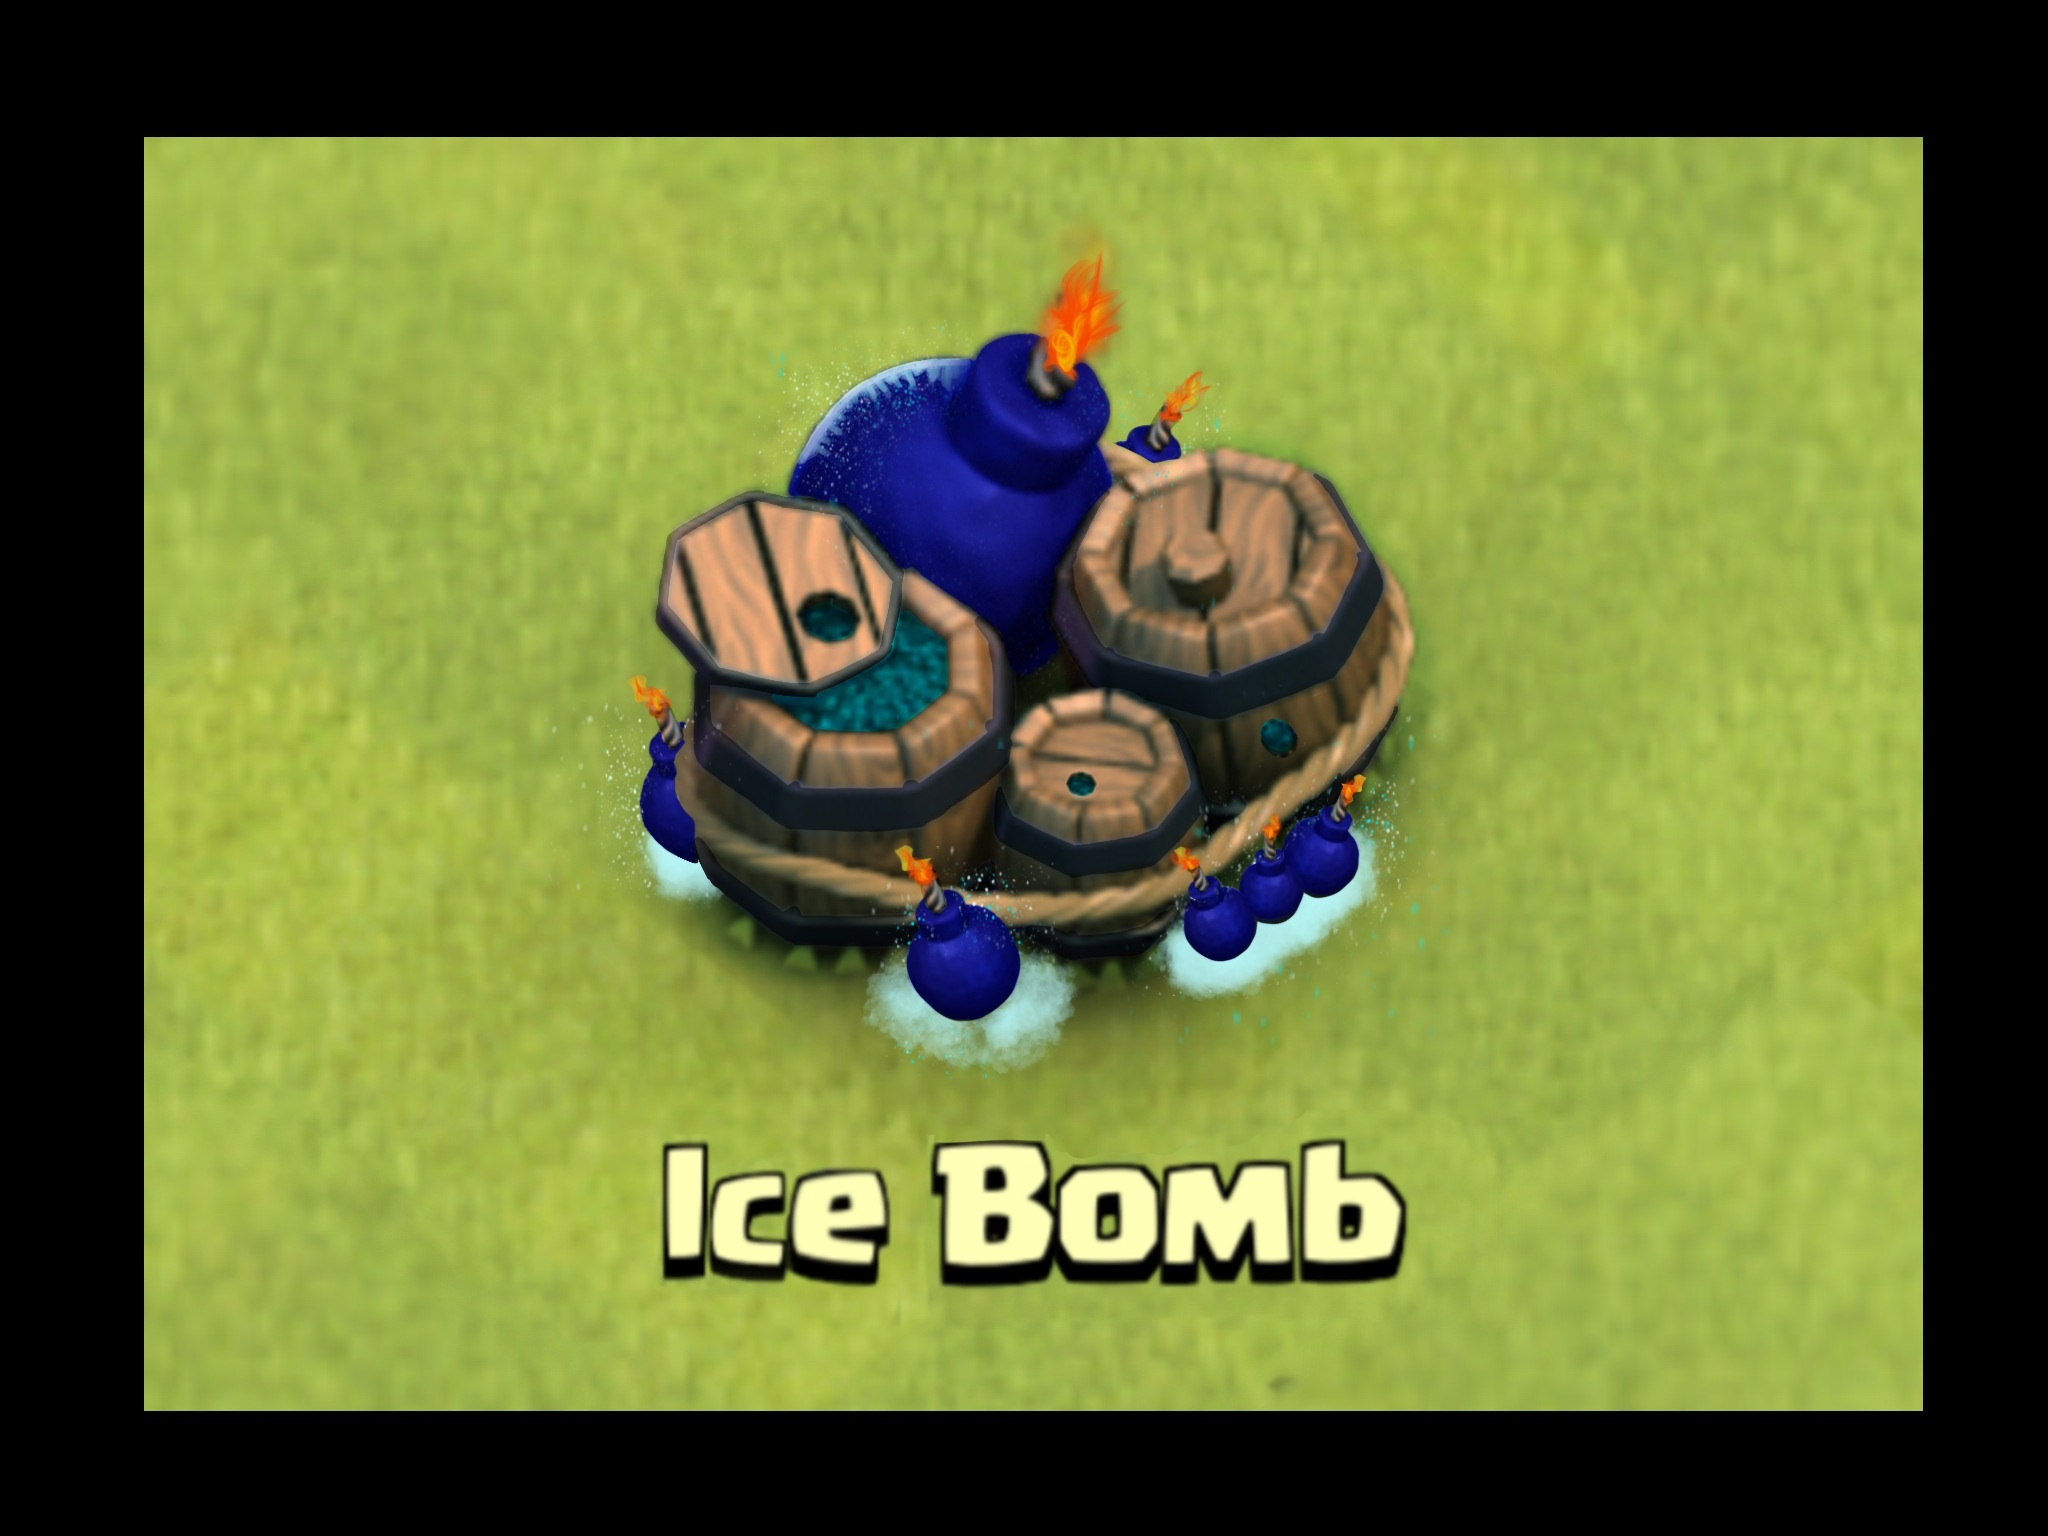 Clash of clans rule 34